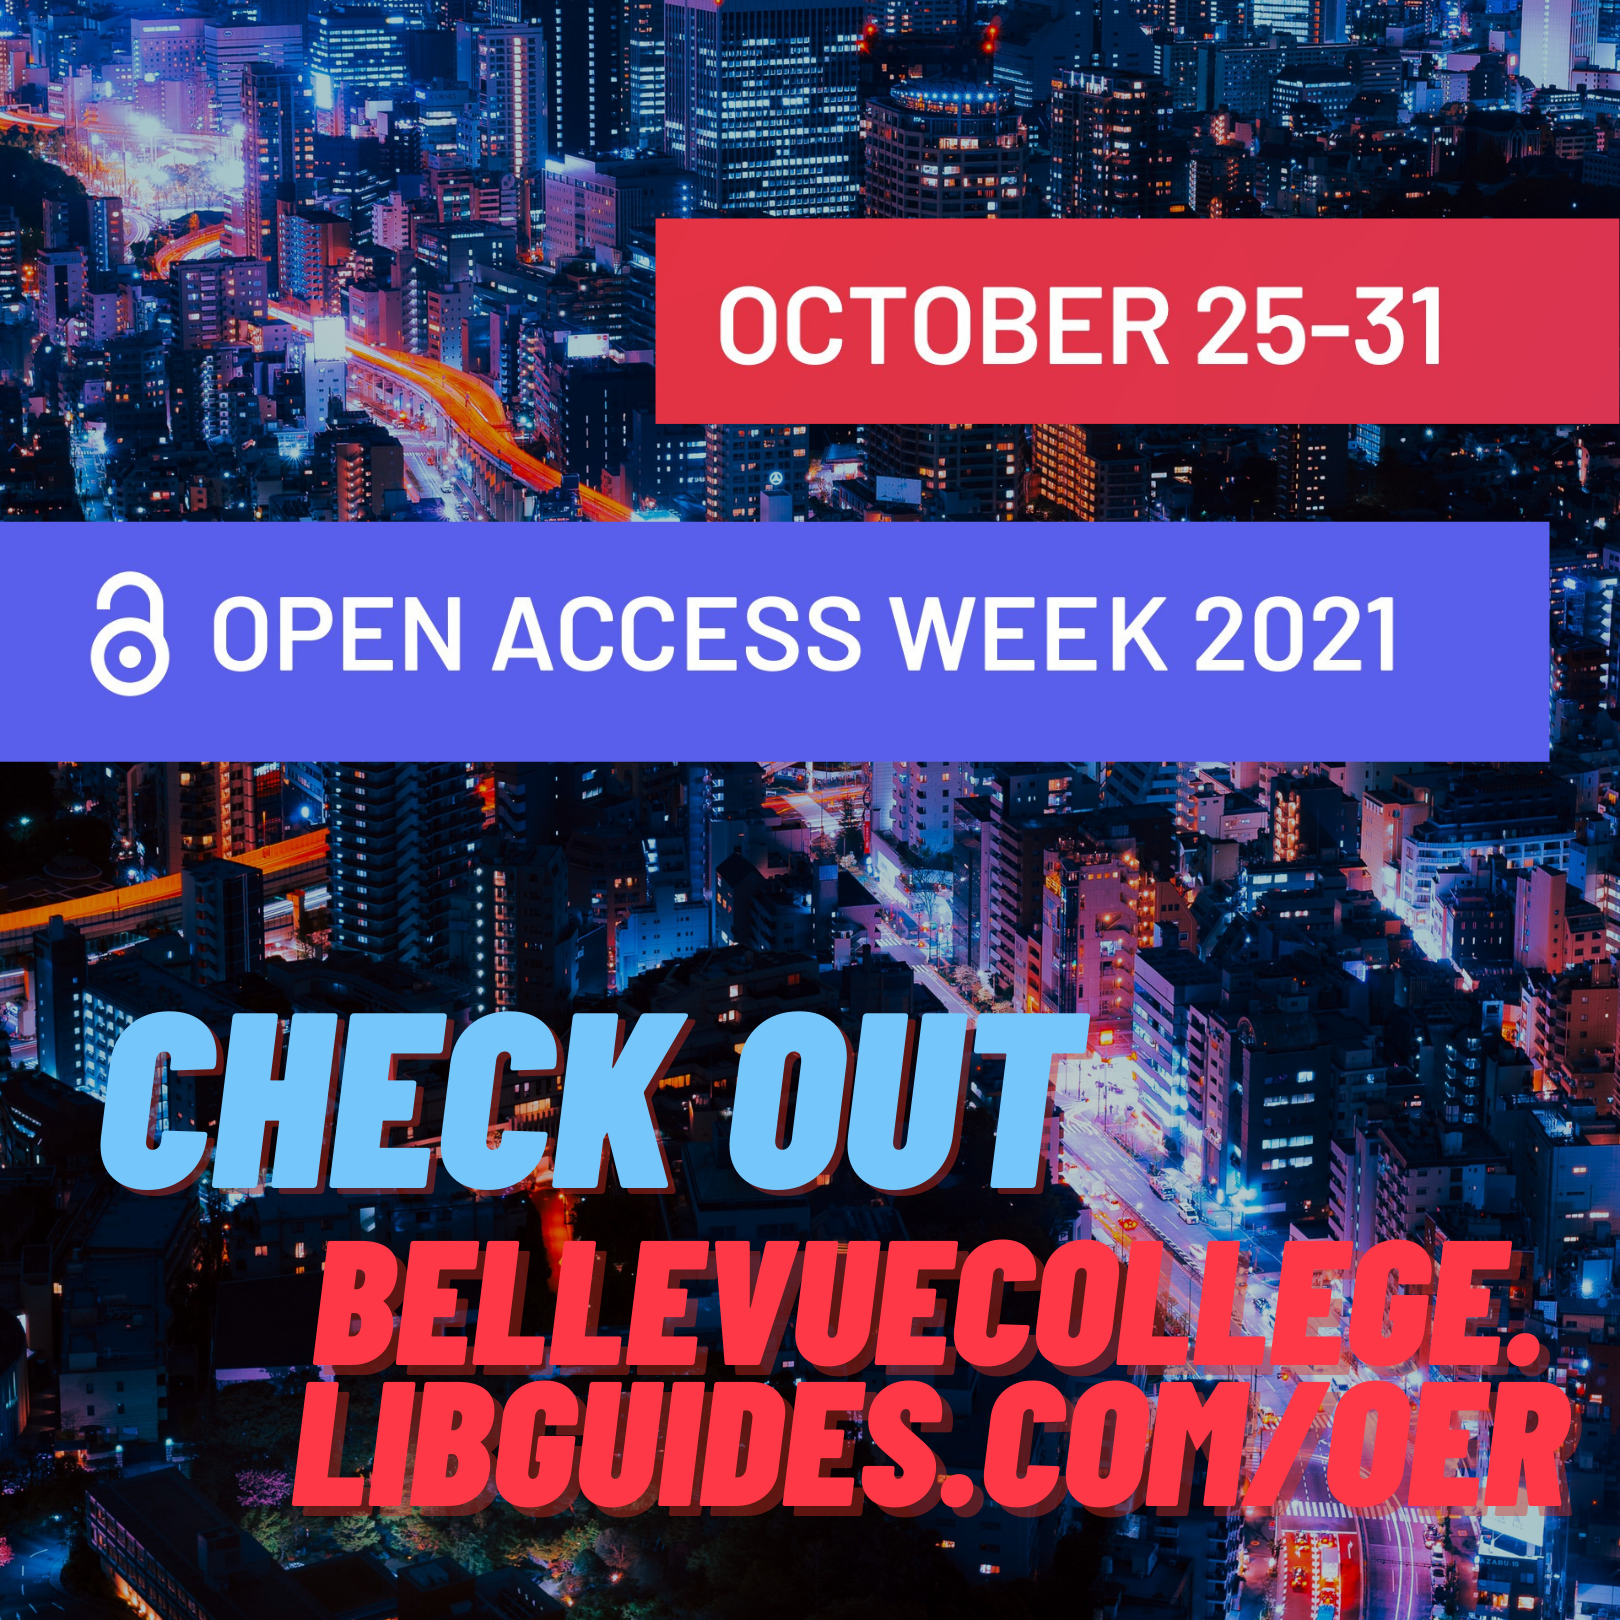 Click to see LibGuide for Open Access Week, Oct 25-31, 2021